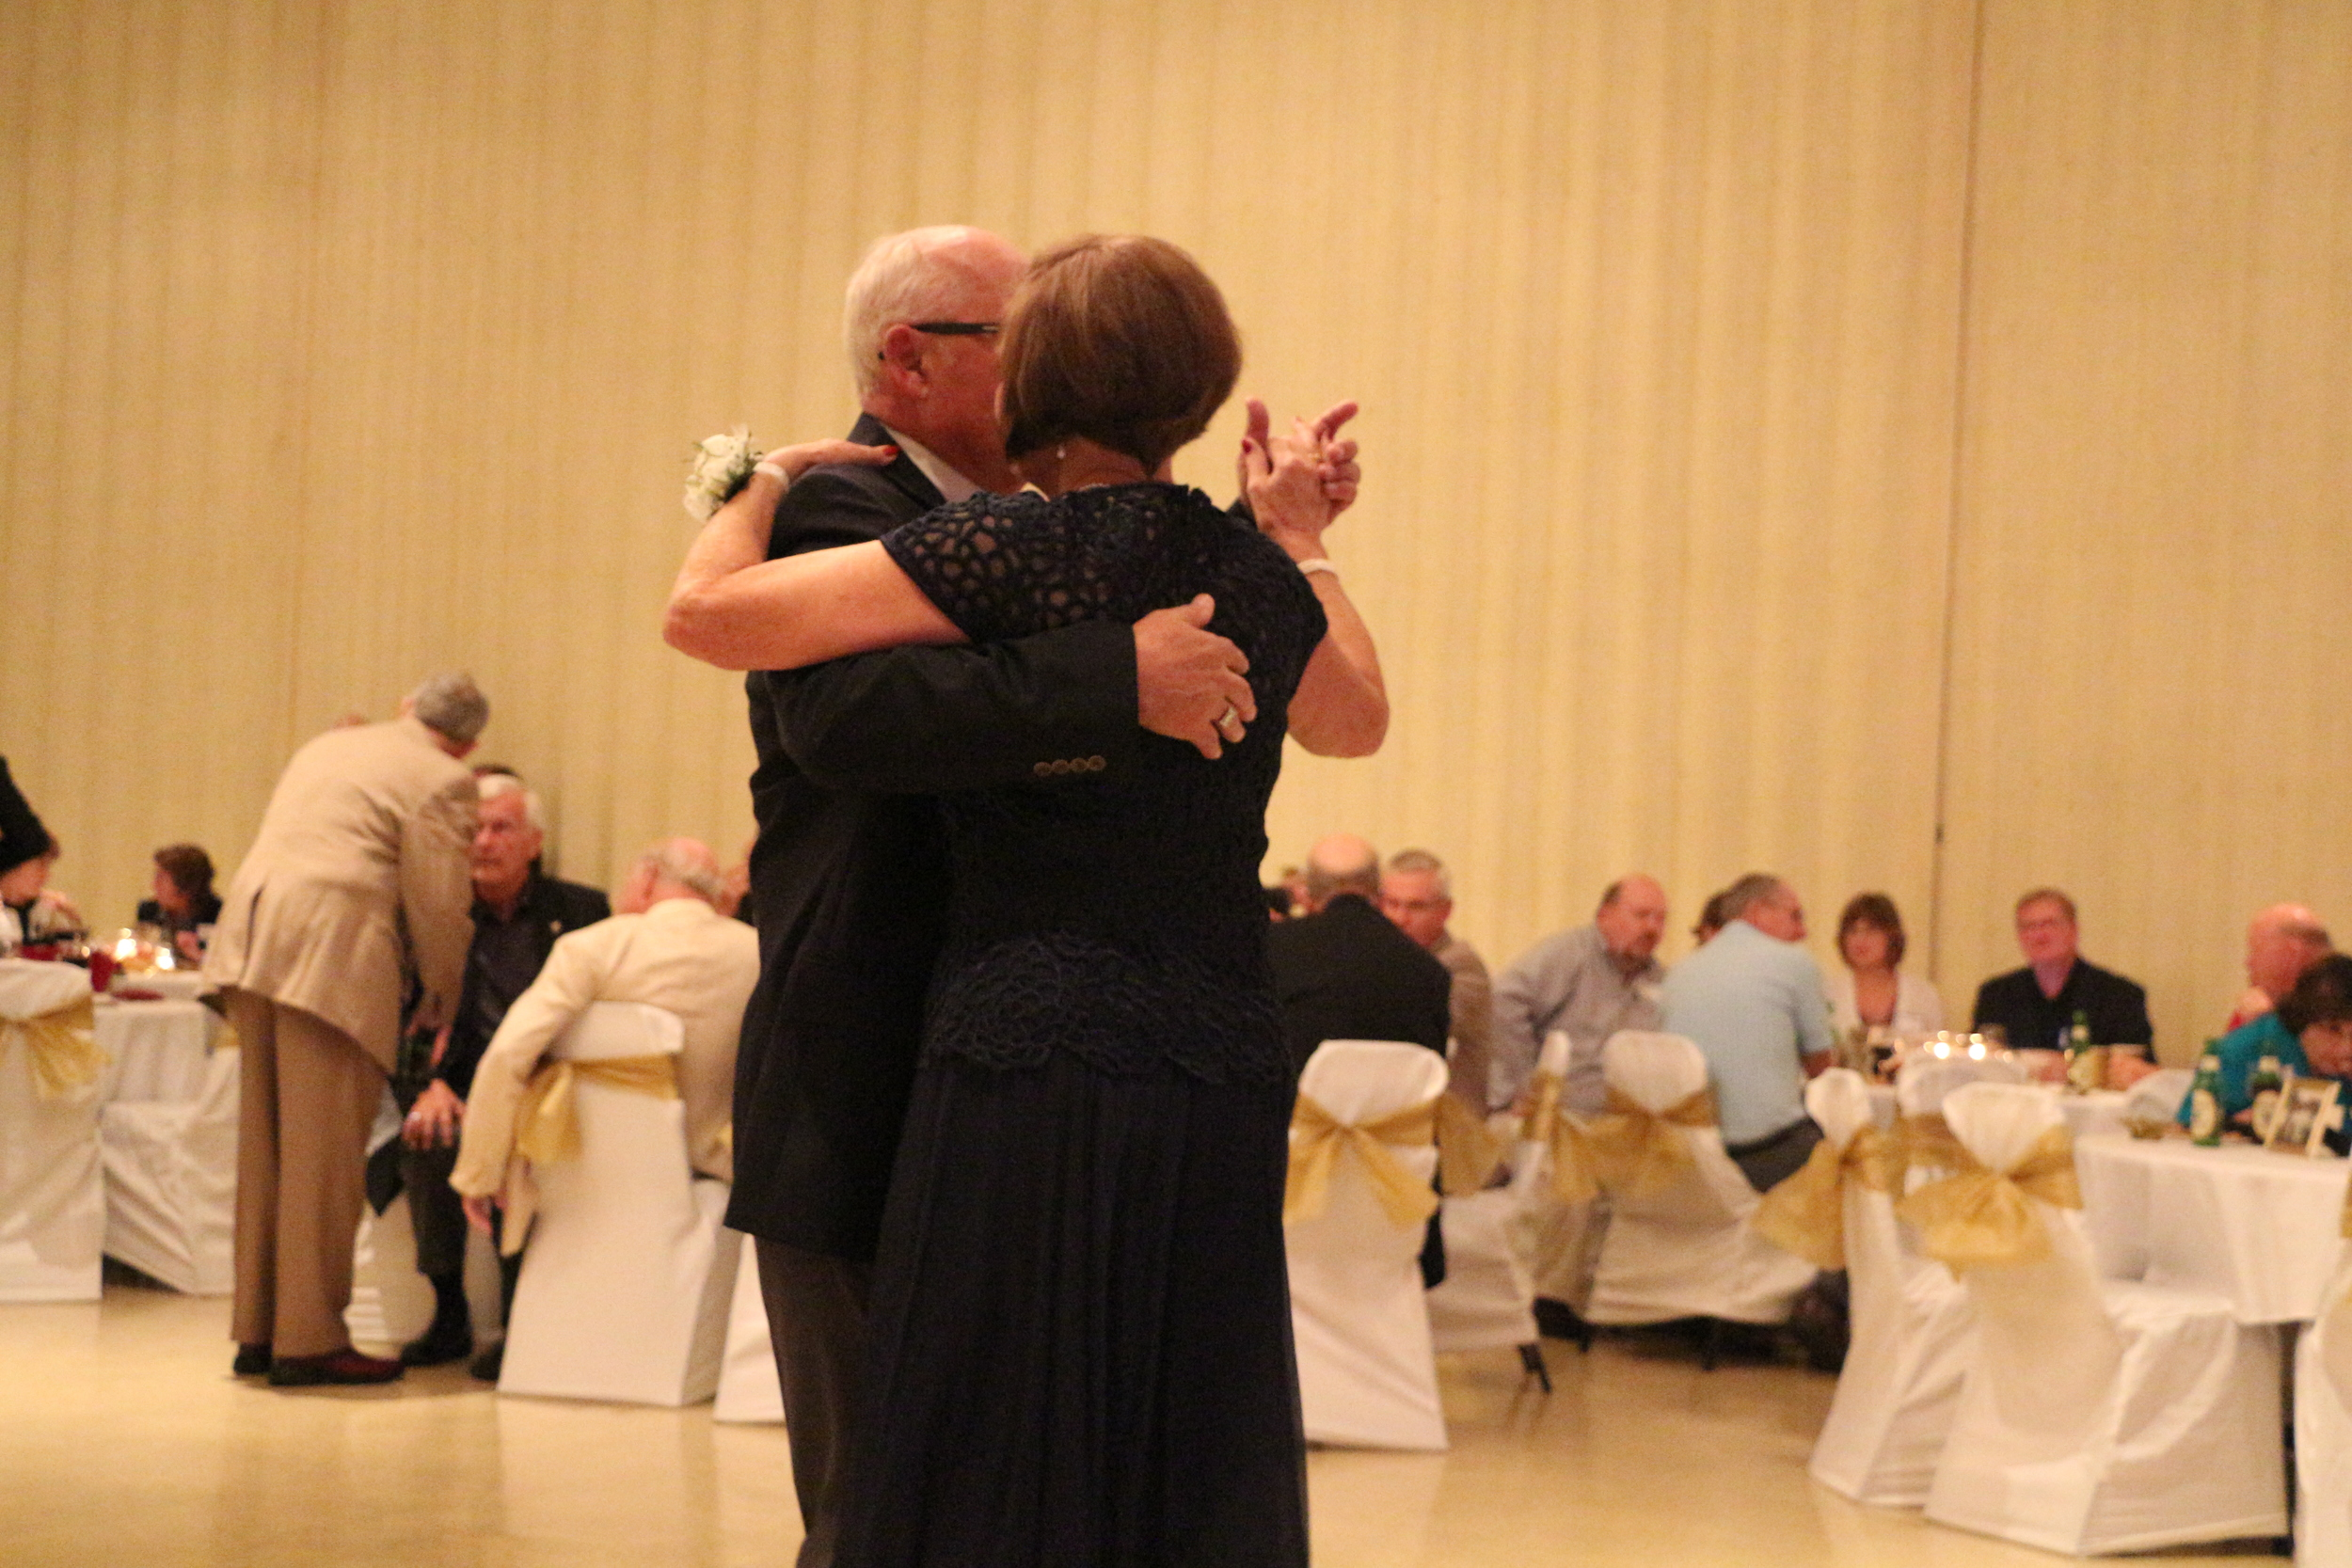 My grandparents (dancing like they love to do) at their 50th wedding anniversary party in August